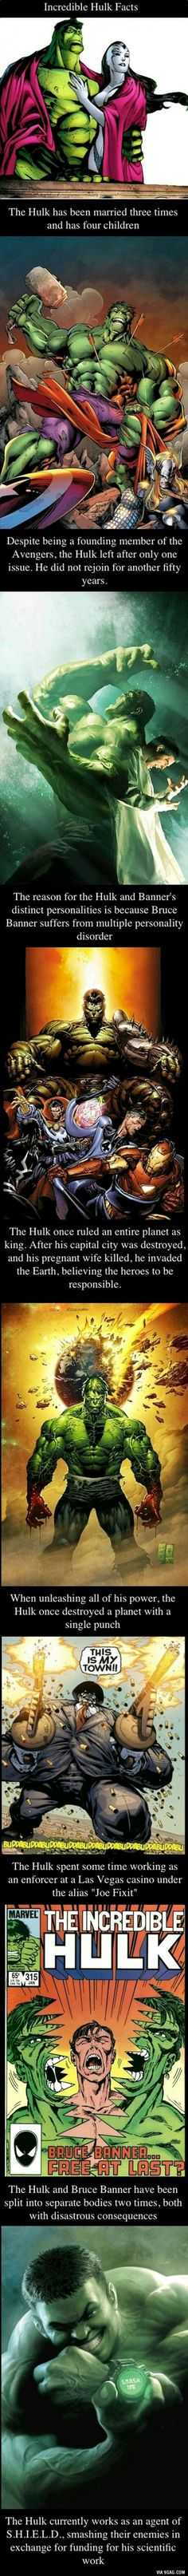 The only Hulk fact that i can see that is wrong is the one about Joe fix It. That is a different Hulk entirely. You can learn all about the Hulks at Marvel Comics website. Comic Movies, Comic Book Characters, Comic Book Heroes, Marvel Characters, Comic Character, Comic Books, Marvel Dc Comics, Marvel Heroes, Hulk Marvel